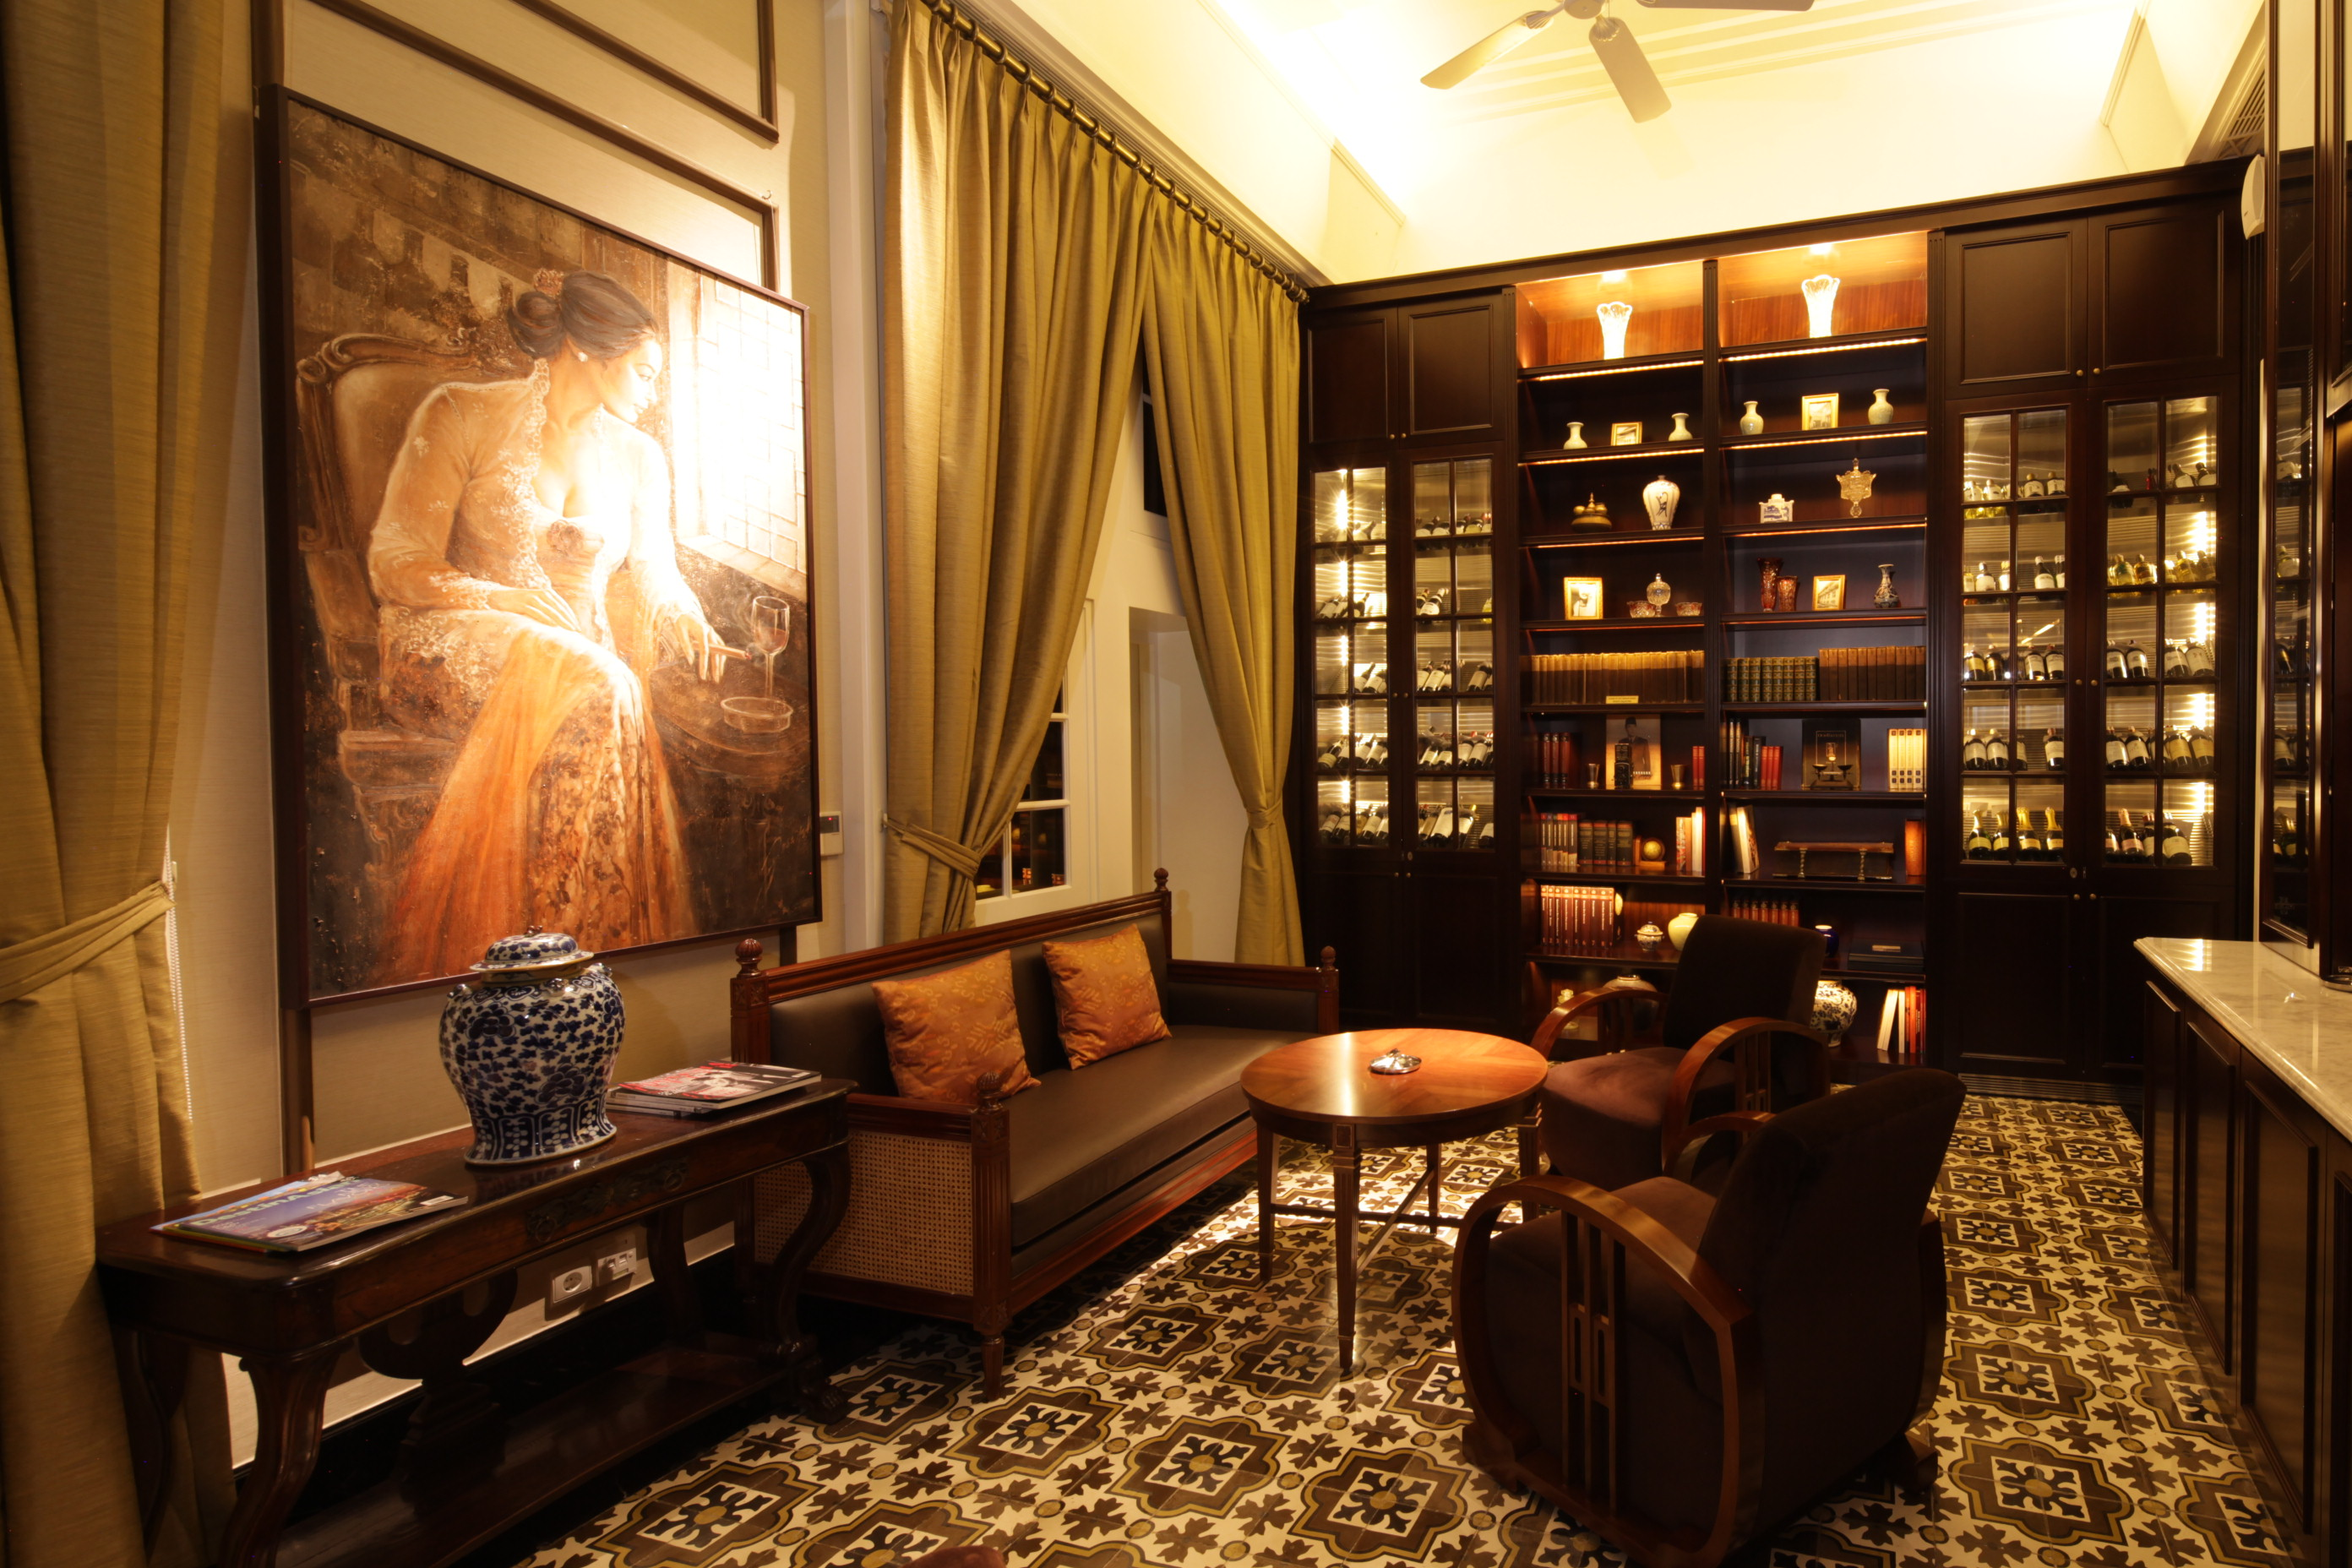 The Hotel Is Located In A Most Prestigious District Menteng Commensurate With Its History Remarks Somewhere Between Erstwhile And Modernity Era